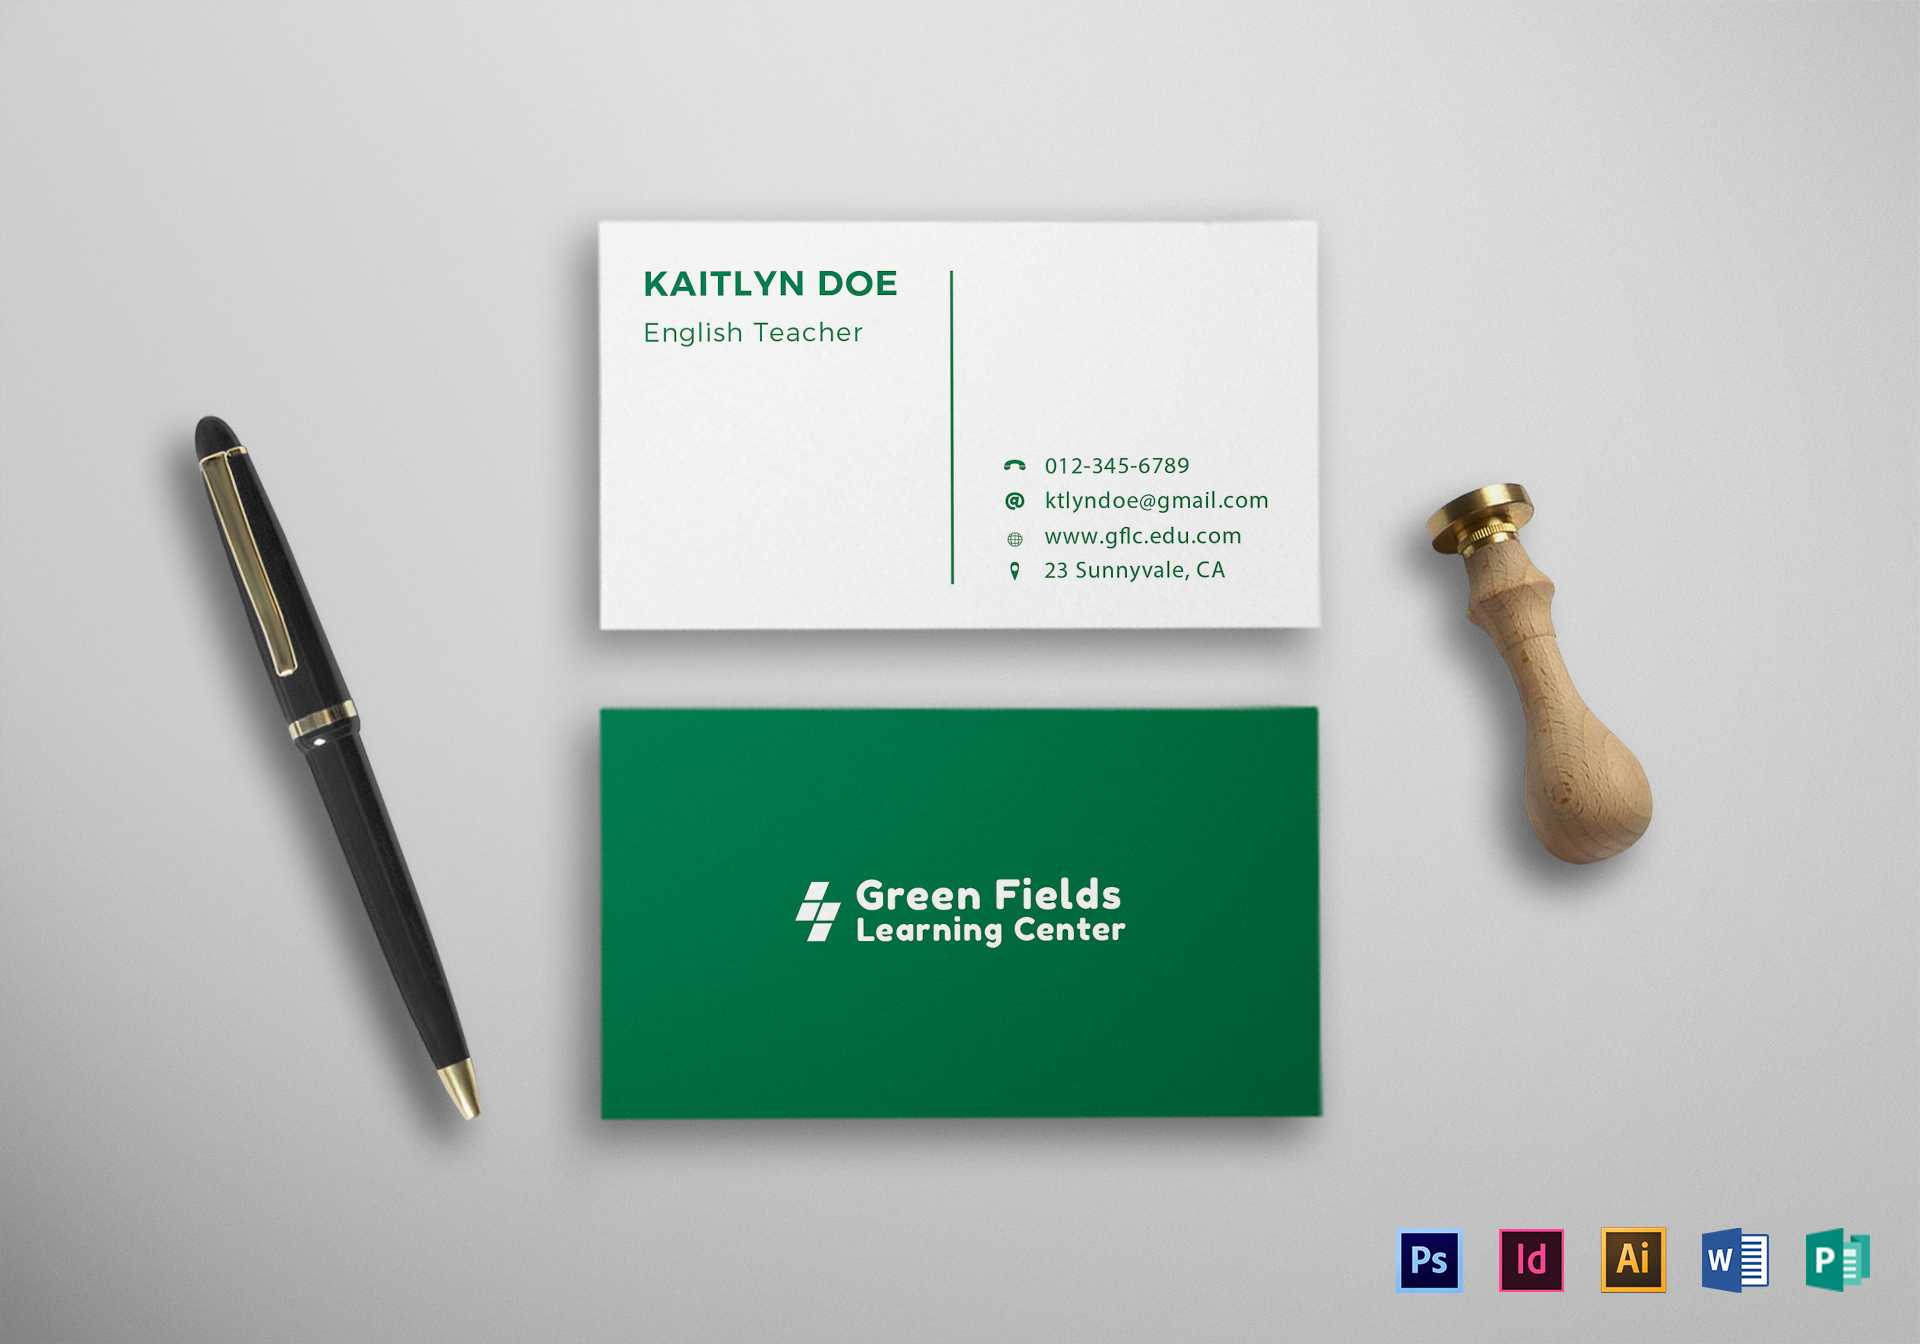 020 Teachers Business Card Mock Up Ms Word Template Free Throughout Business Cards For Teachers Templates Free